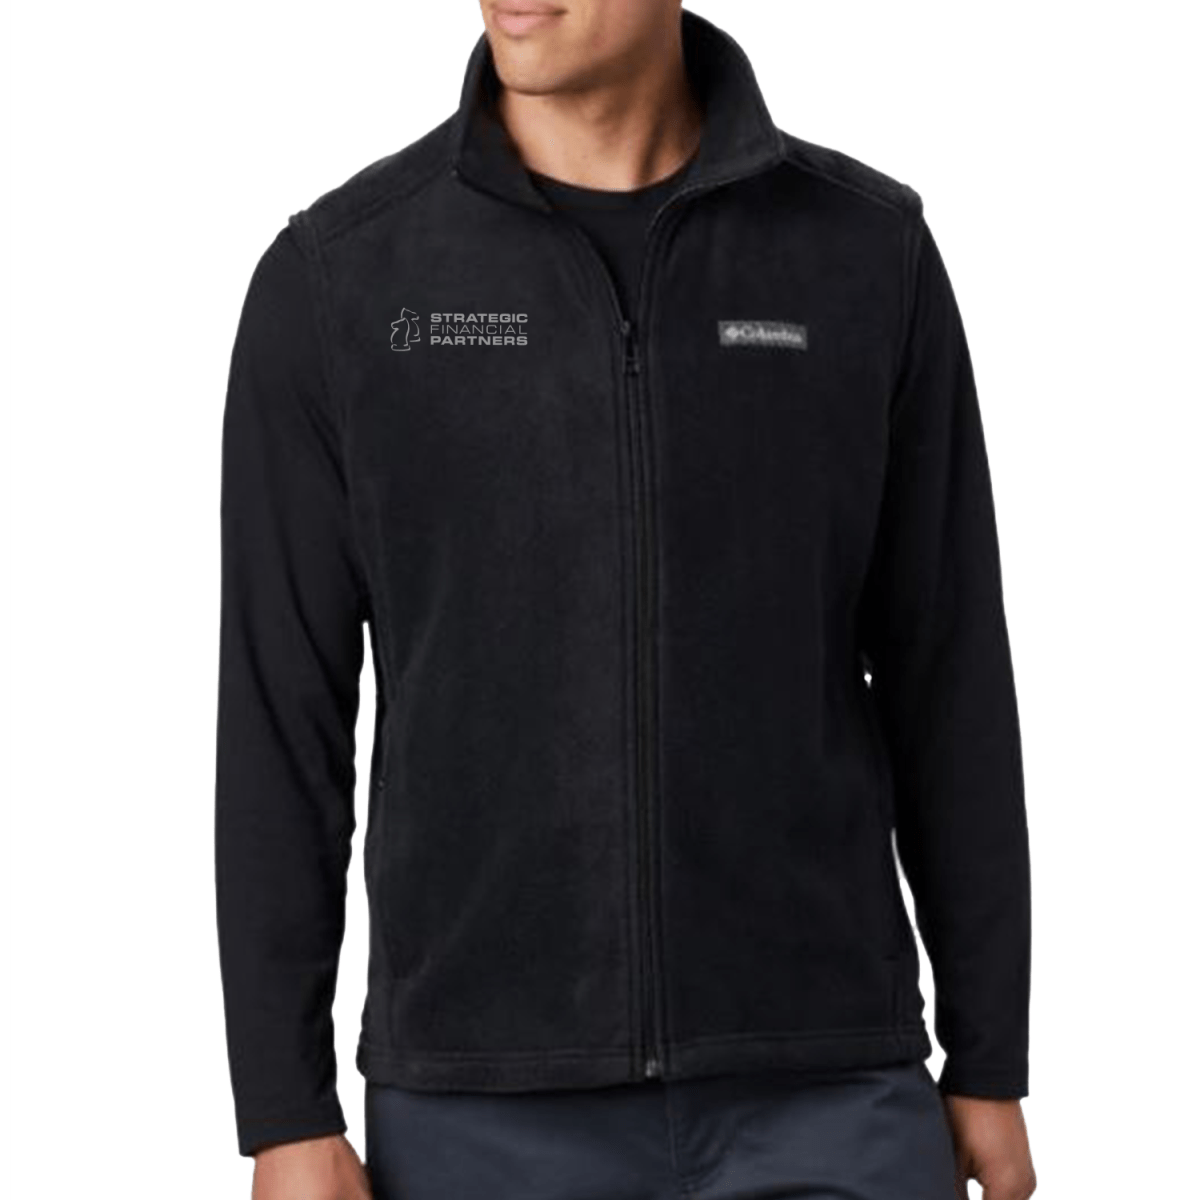 Branded Columbia Fleece Vest - Black